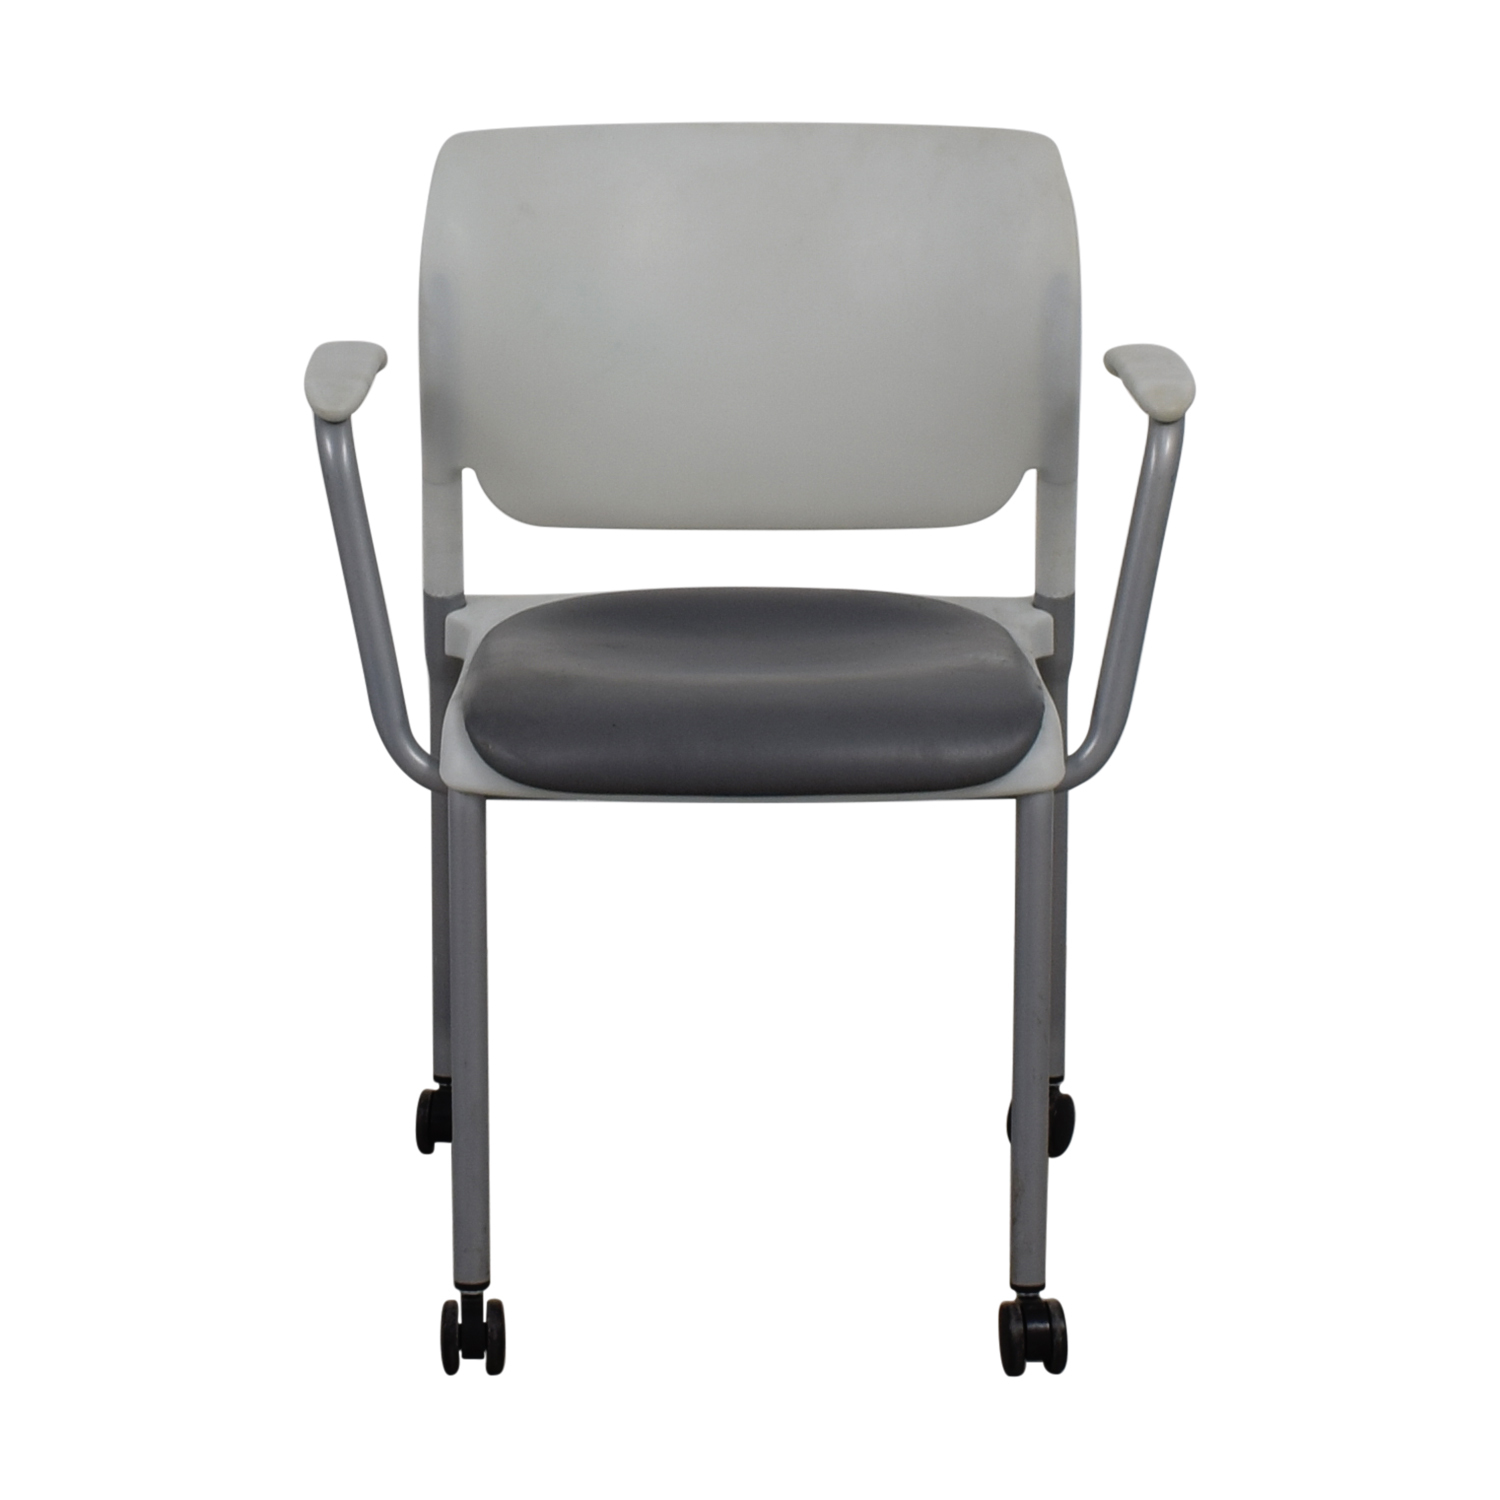 SitOnIt SitOnIt White and Grey Side Chair on Castors nj